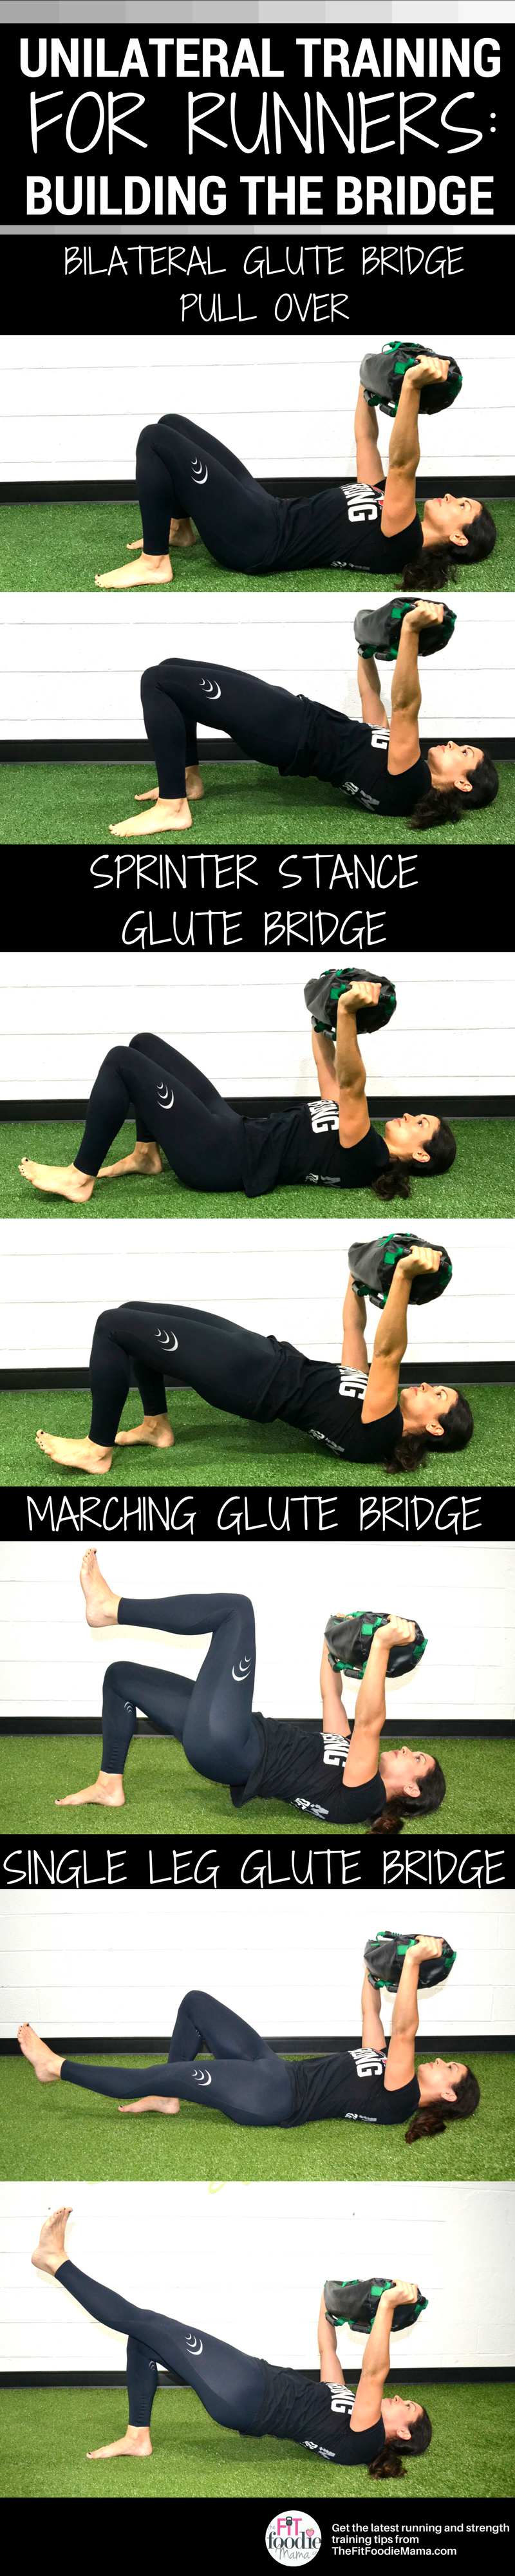 Unliateral Training for Runners: Building the Hip Bridge with the Ultimate Sandbag using DVRT progression exercises